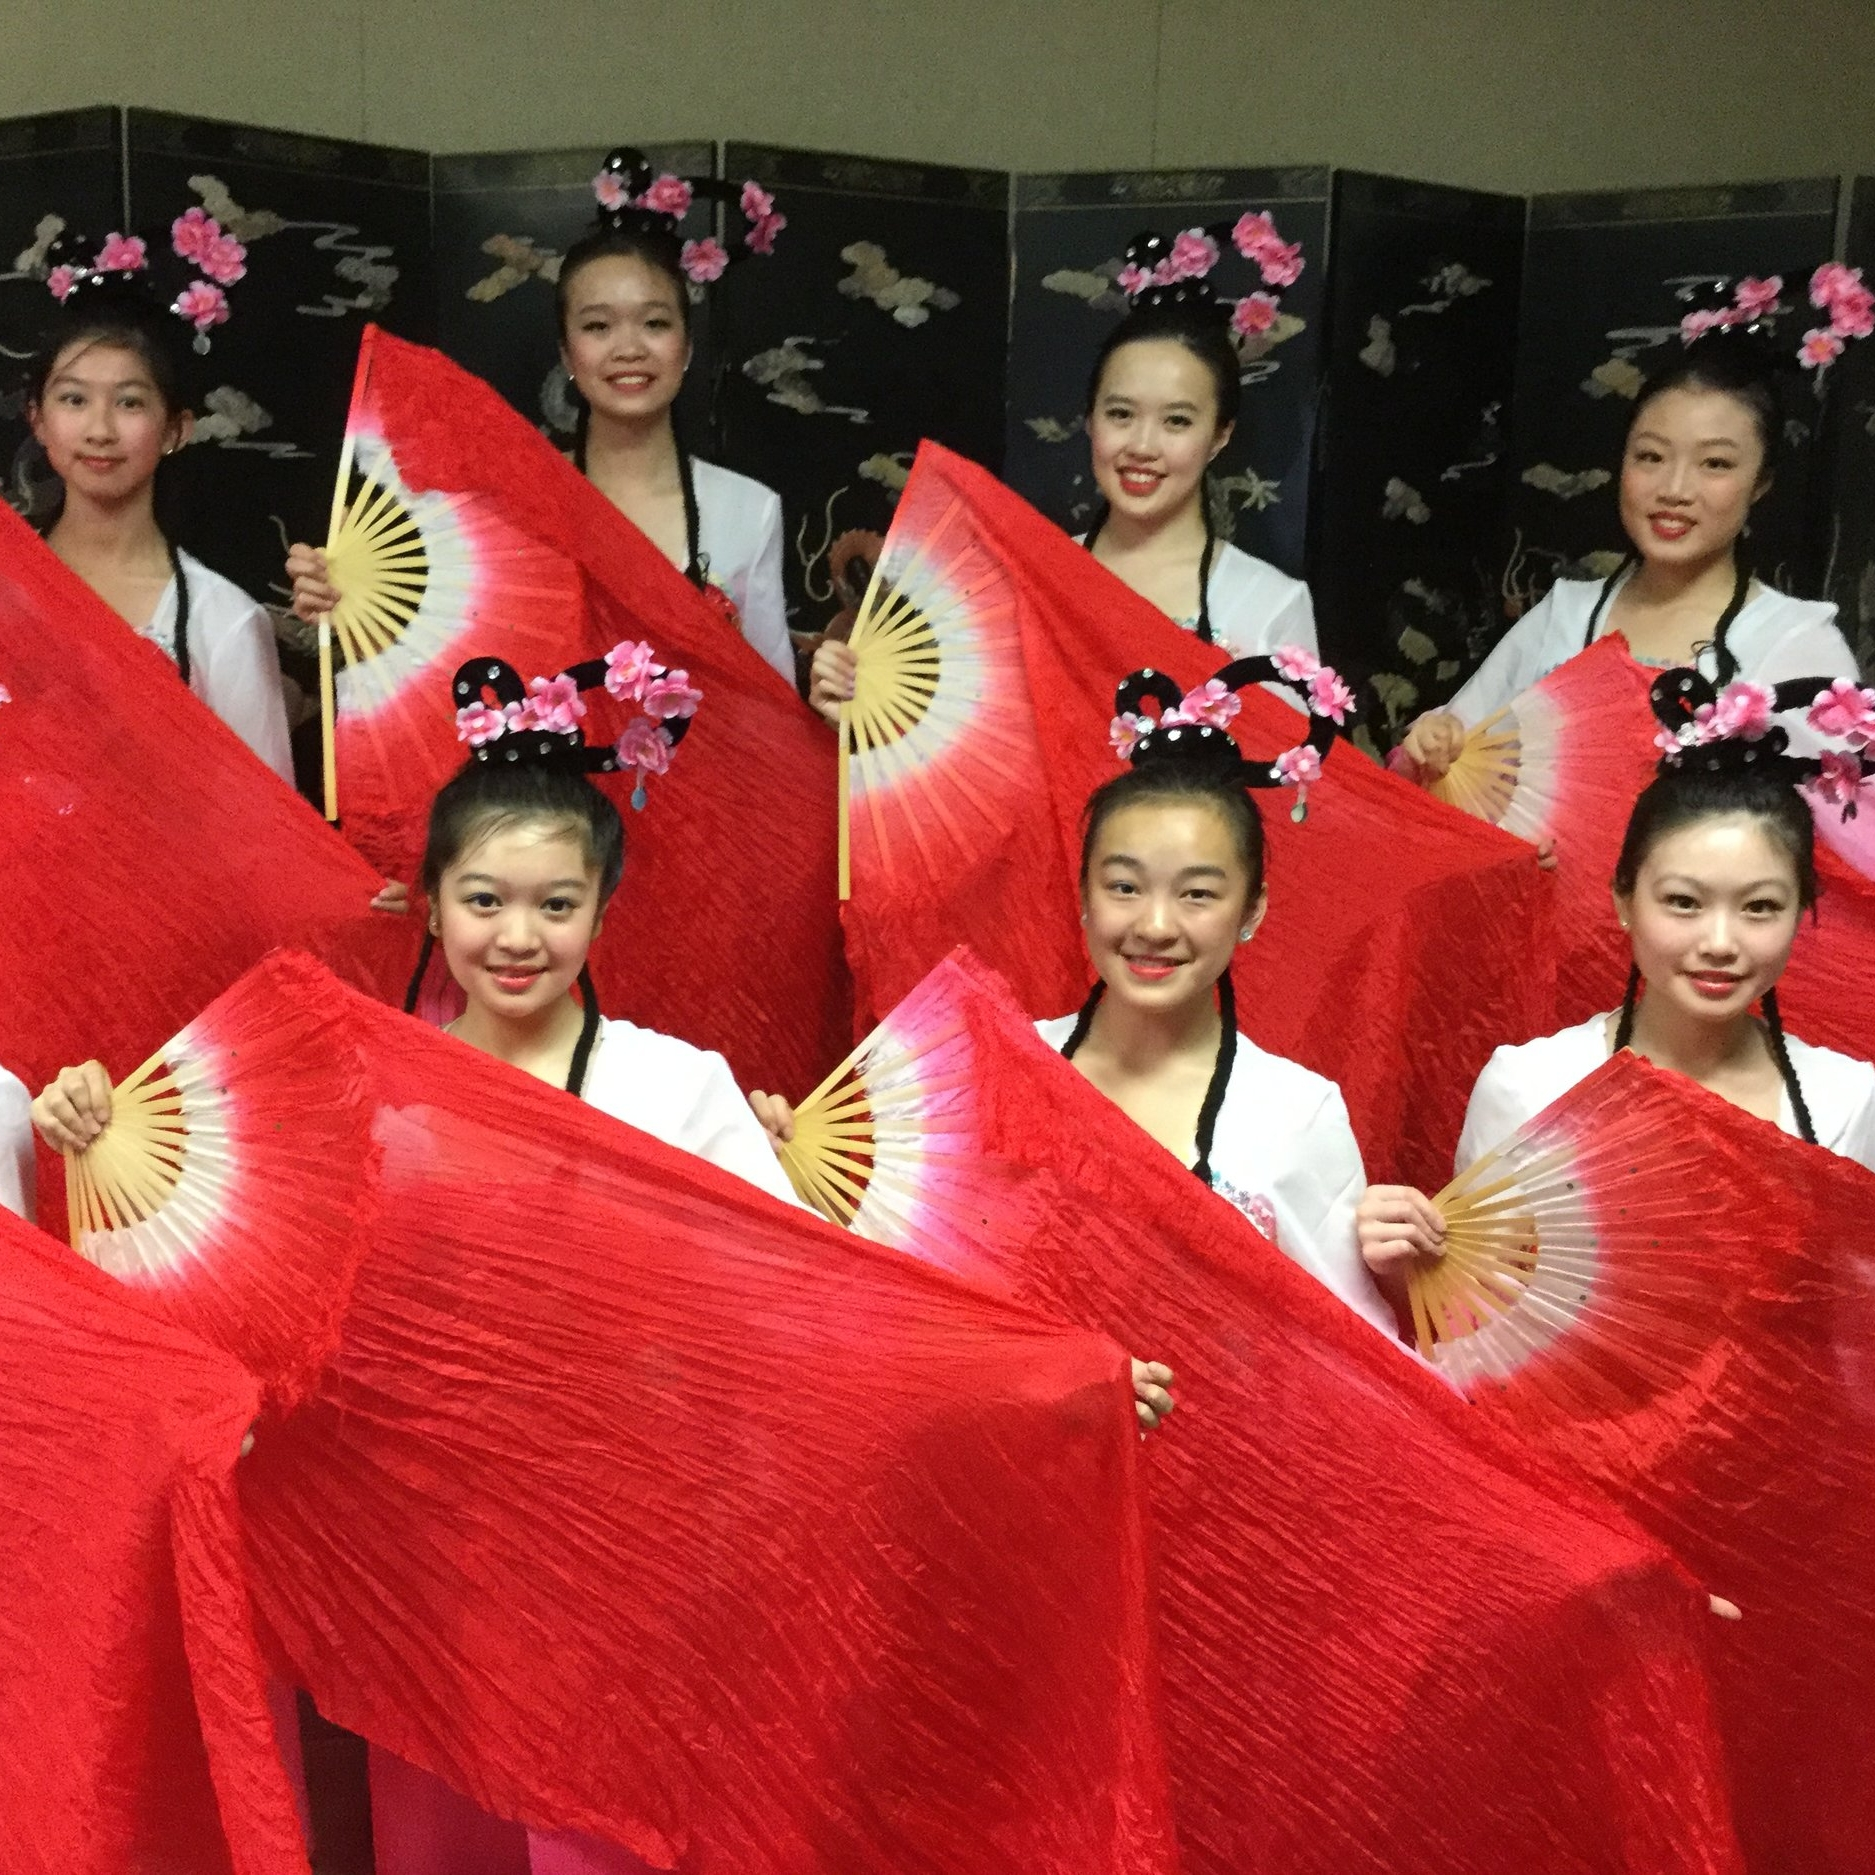 Xiao Hai Ou Dance Group.jpg